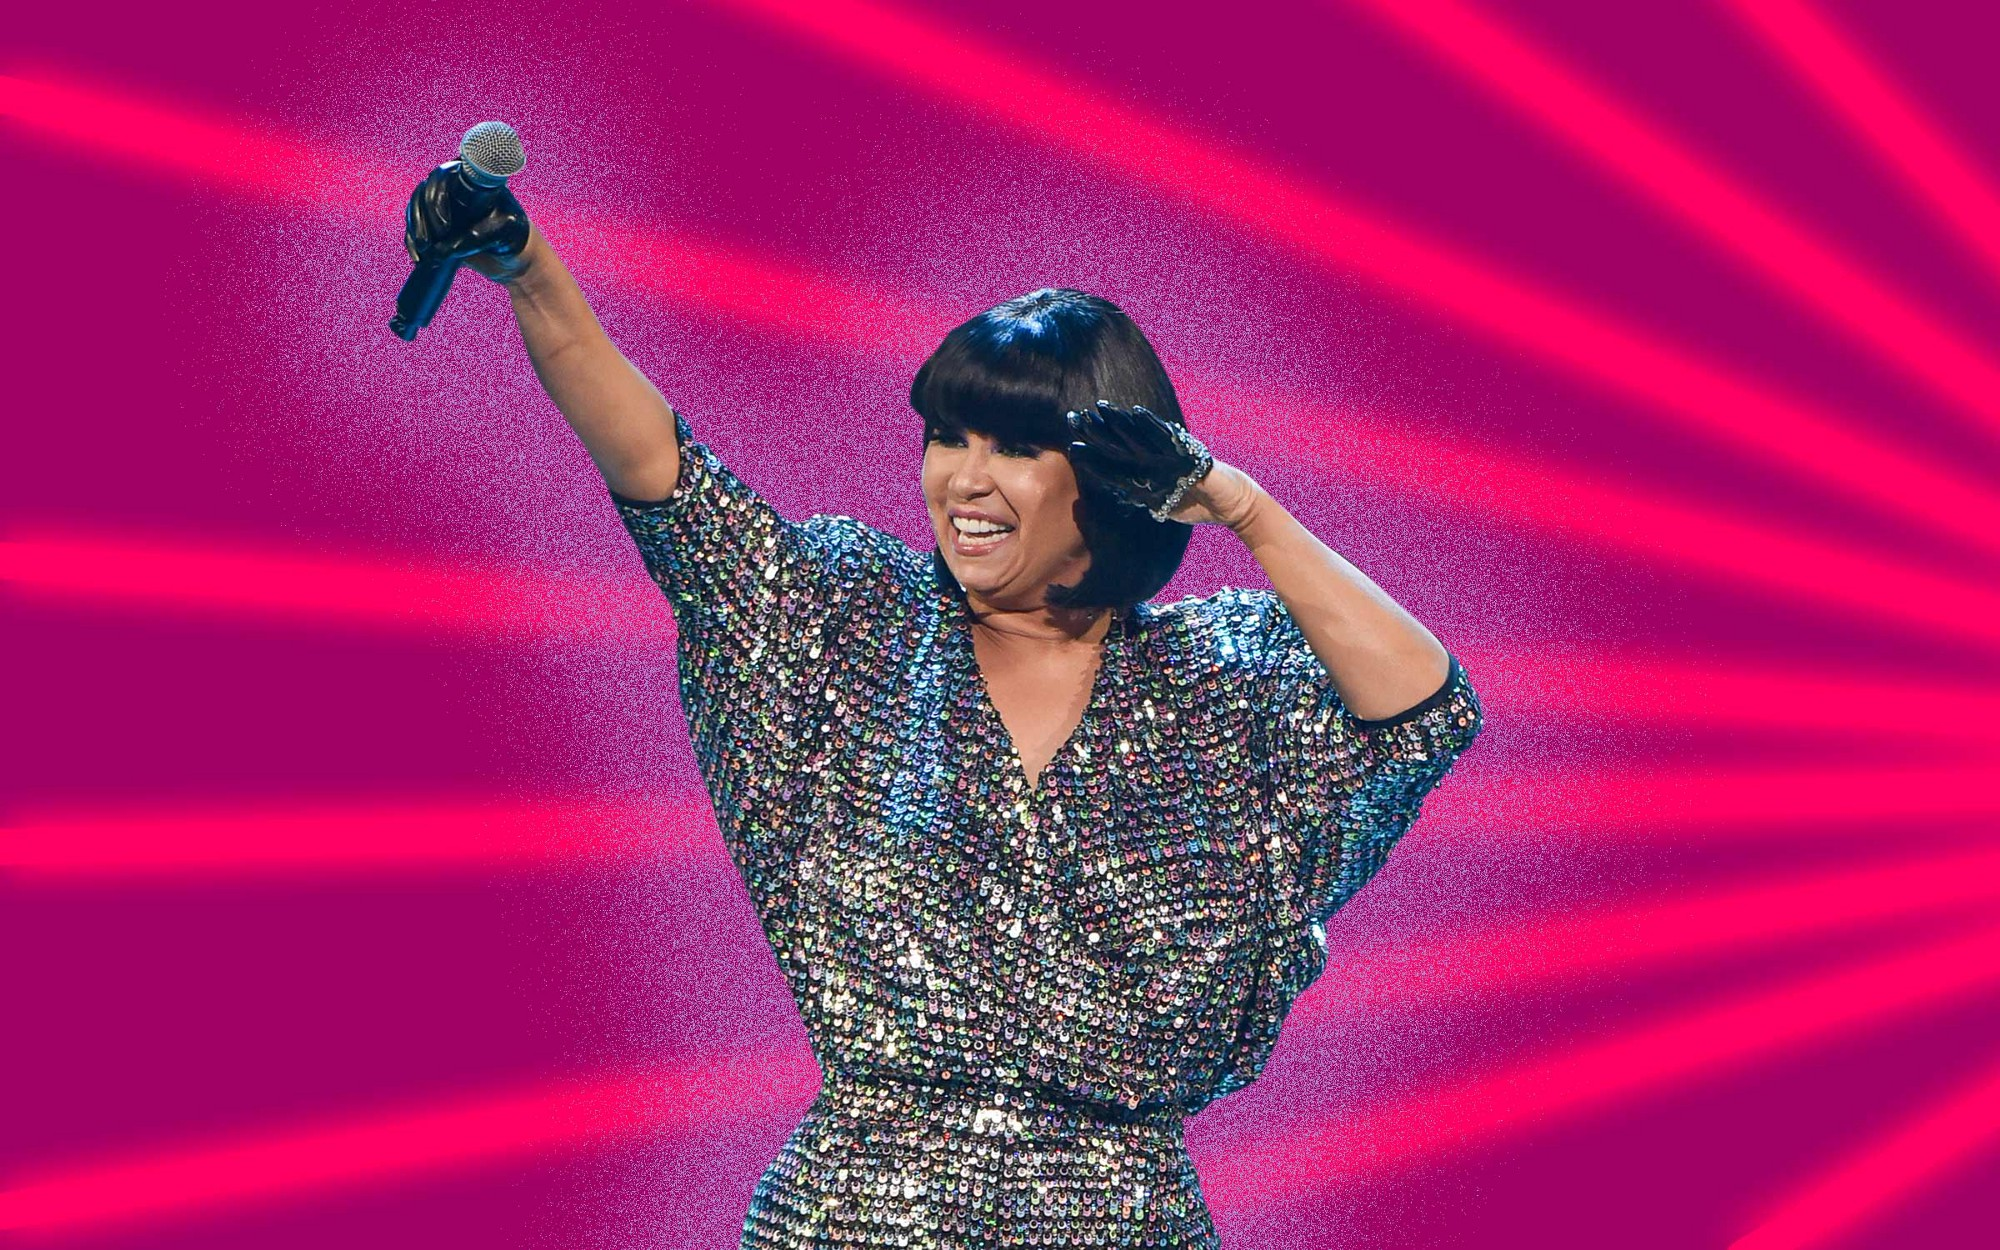 Graphic illustration of CeCe Peniston during a live performance against a fuchsia background with red light effects.